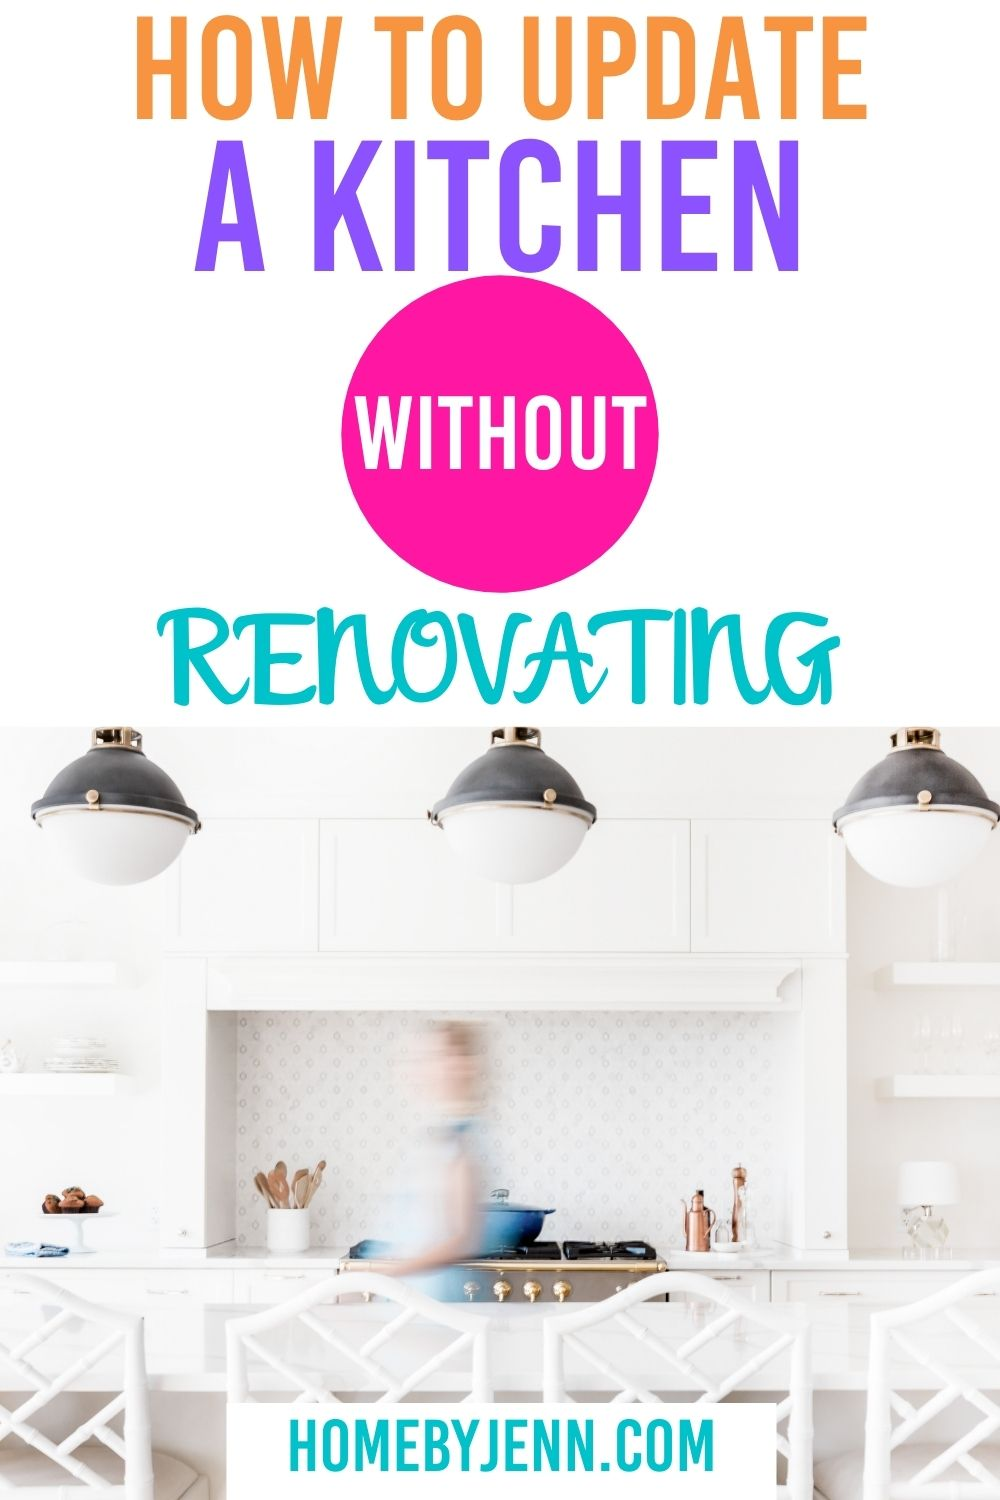 If you're tired of the way your kitchen feels and looks you can do a few updates to improve your kitchen. Here are some little things you can do to update your kitchen without renovating it. If you've got a small kitchen budget let me show you how to update a kitchen on a budget. via @homebyjenn